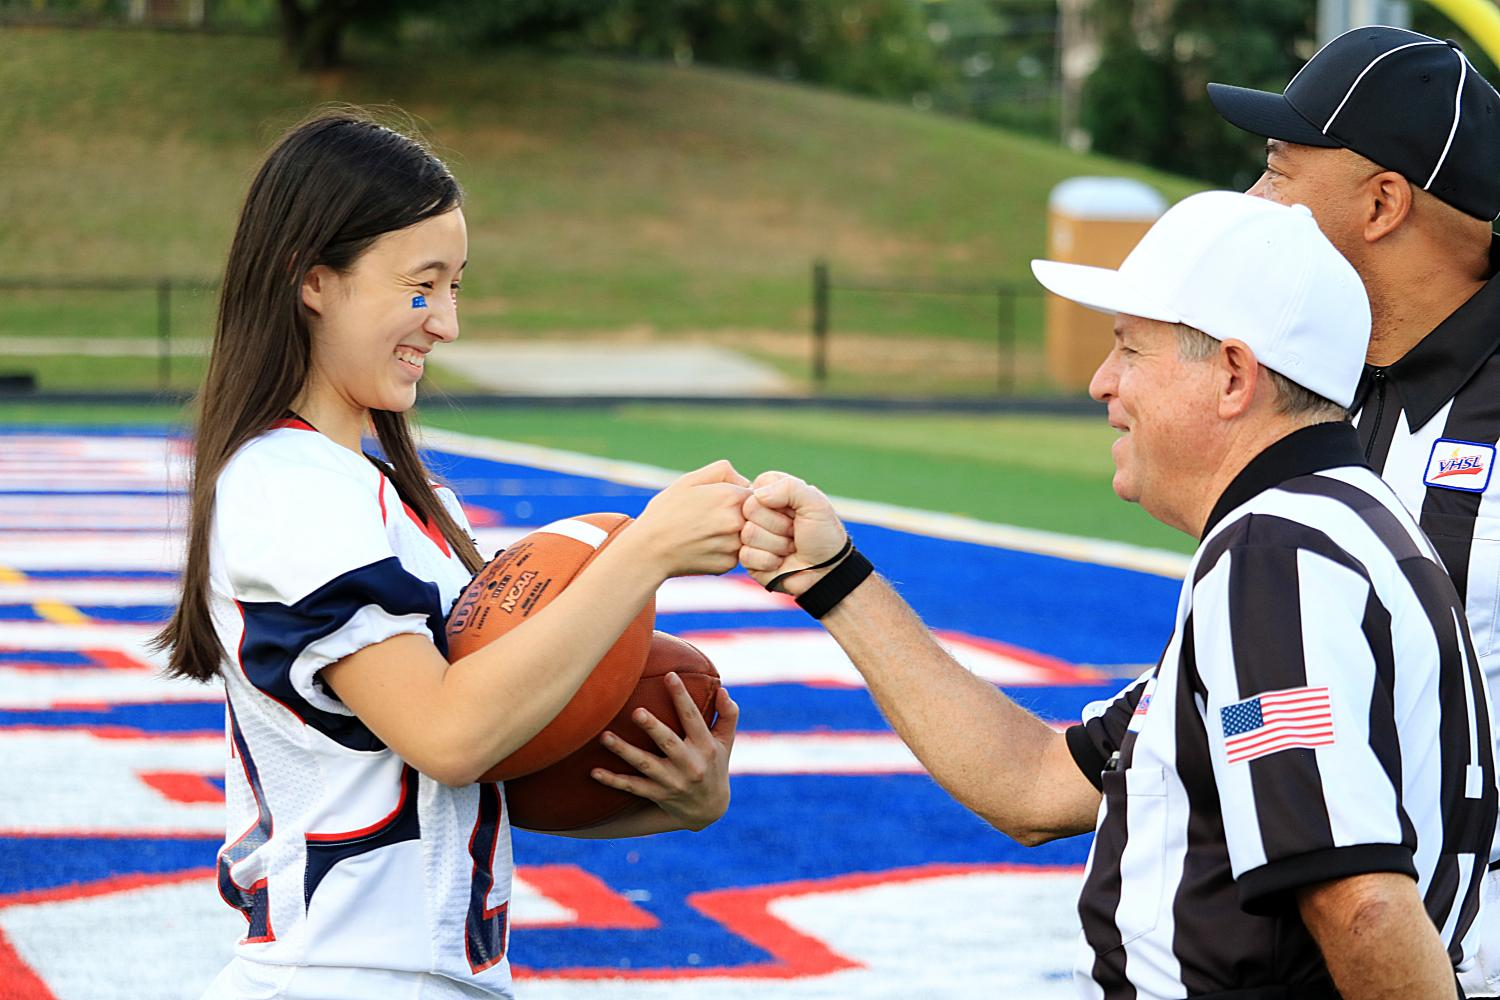 Senior Victoria Chuah fists bump one of the referees prior to the start of the game.